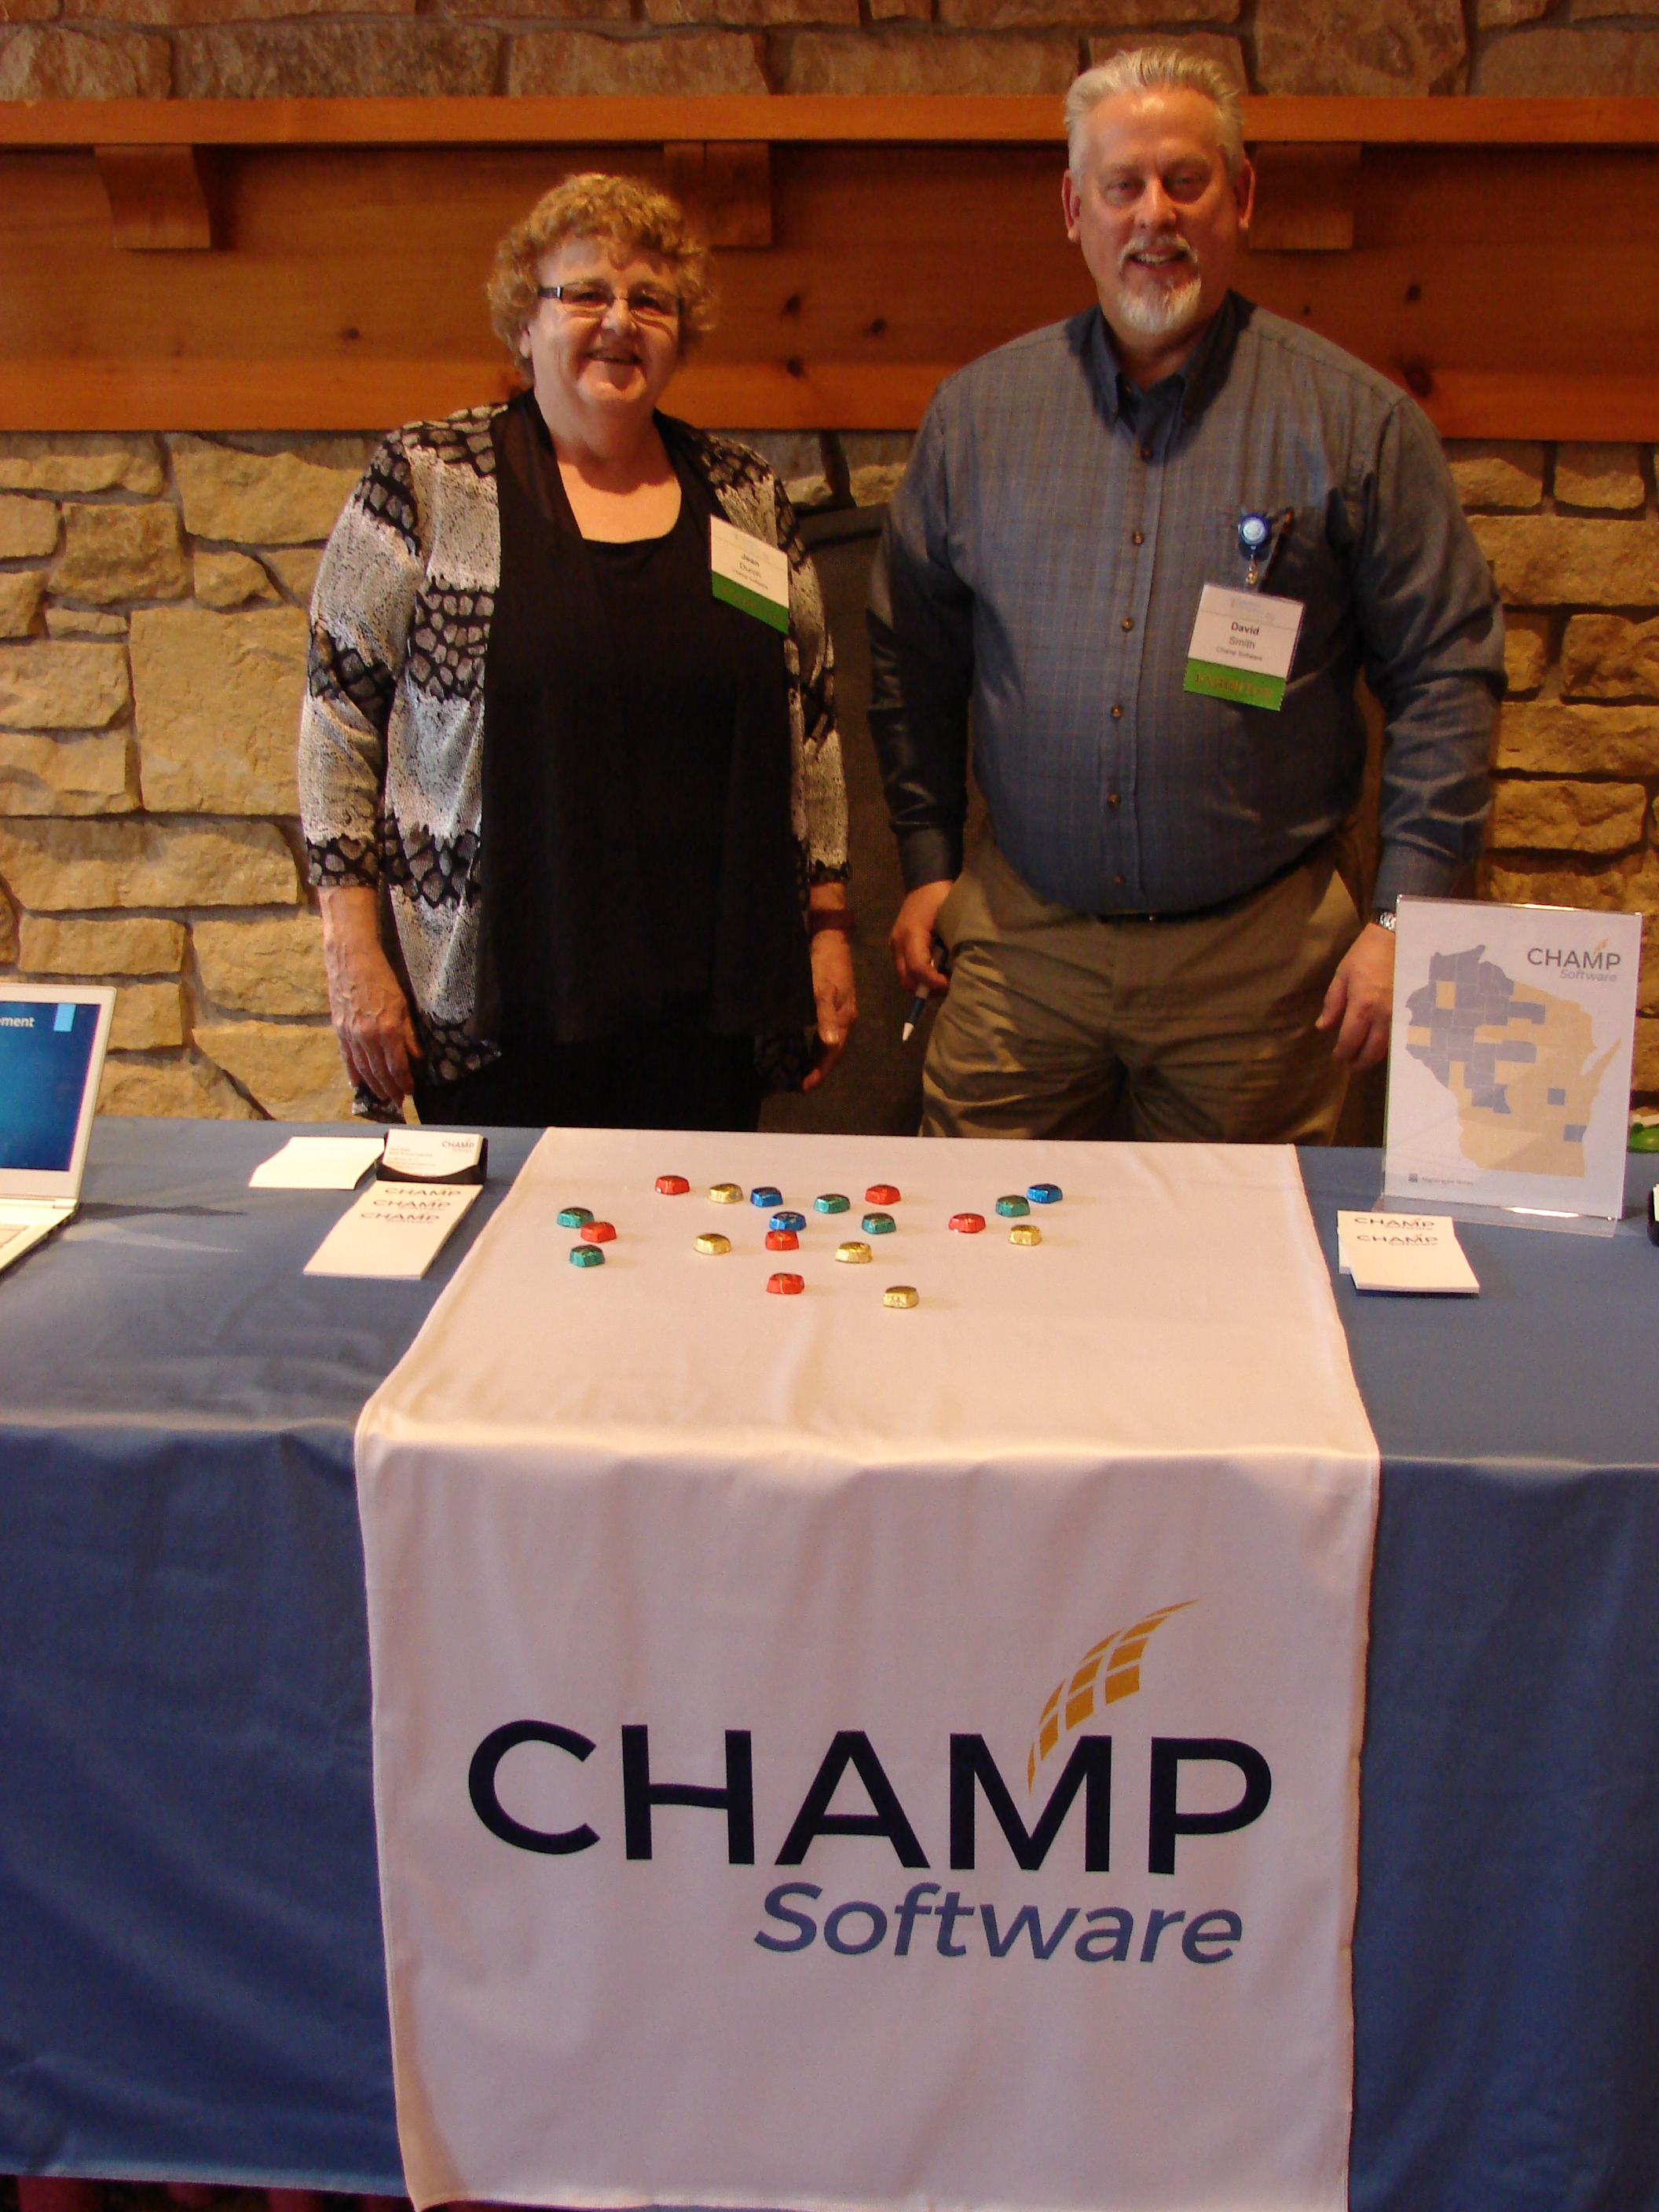 Jean Durch, Champ Software Training & Implementation Coordinator and David Smith Senior Account Executive at the Champ Software stand at the 2018 WALHDAB Operations Conference